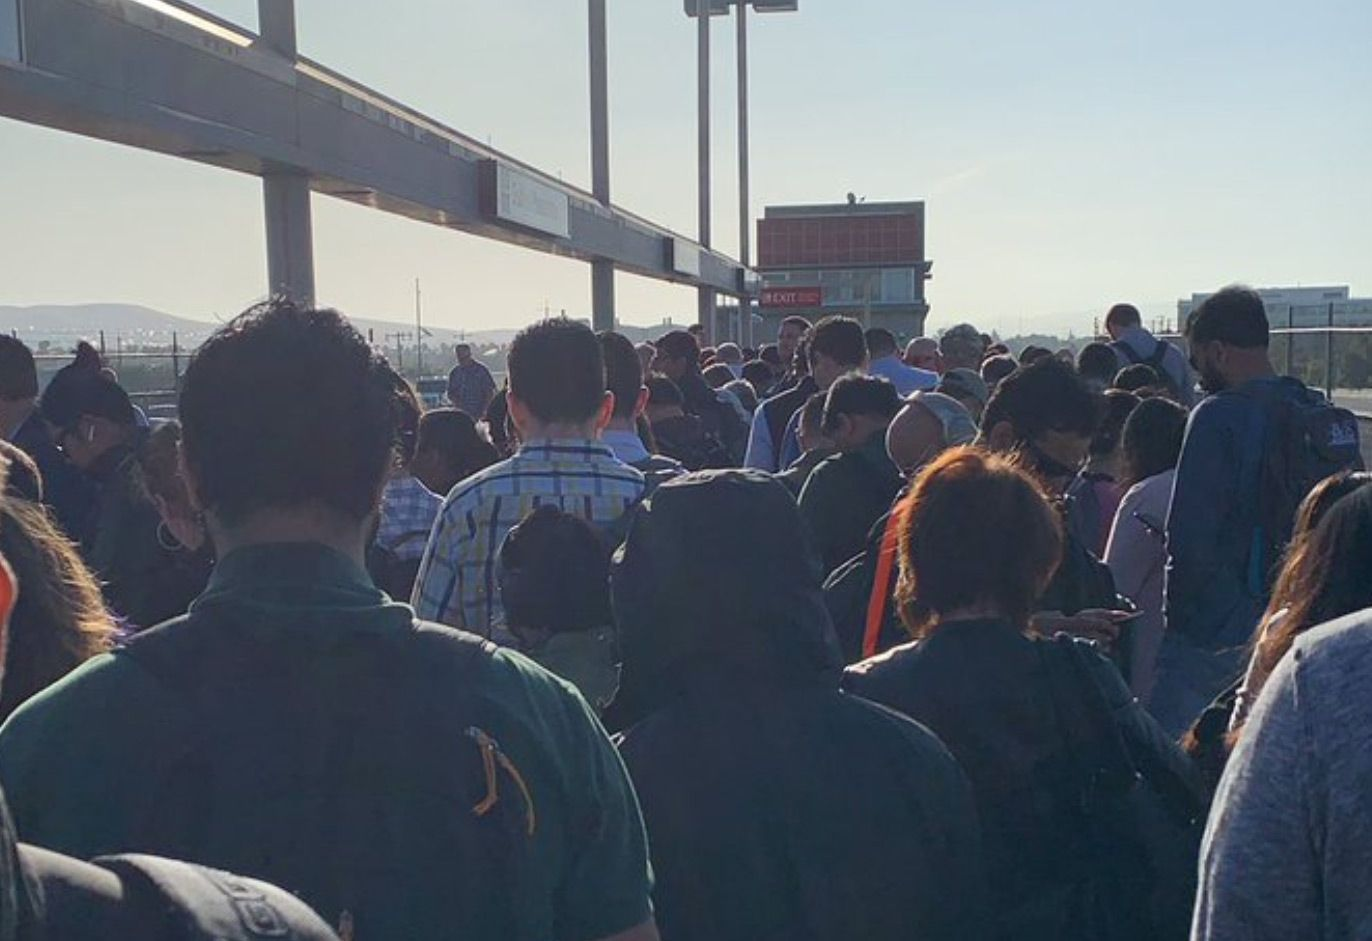 Man In Tracks At Montgomery Station Causes Huge Mid-Morning BART Delay